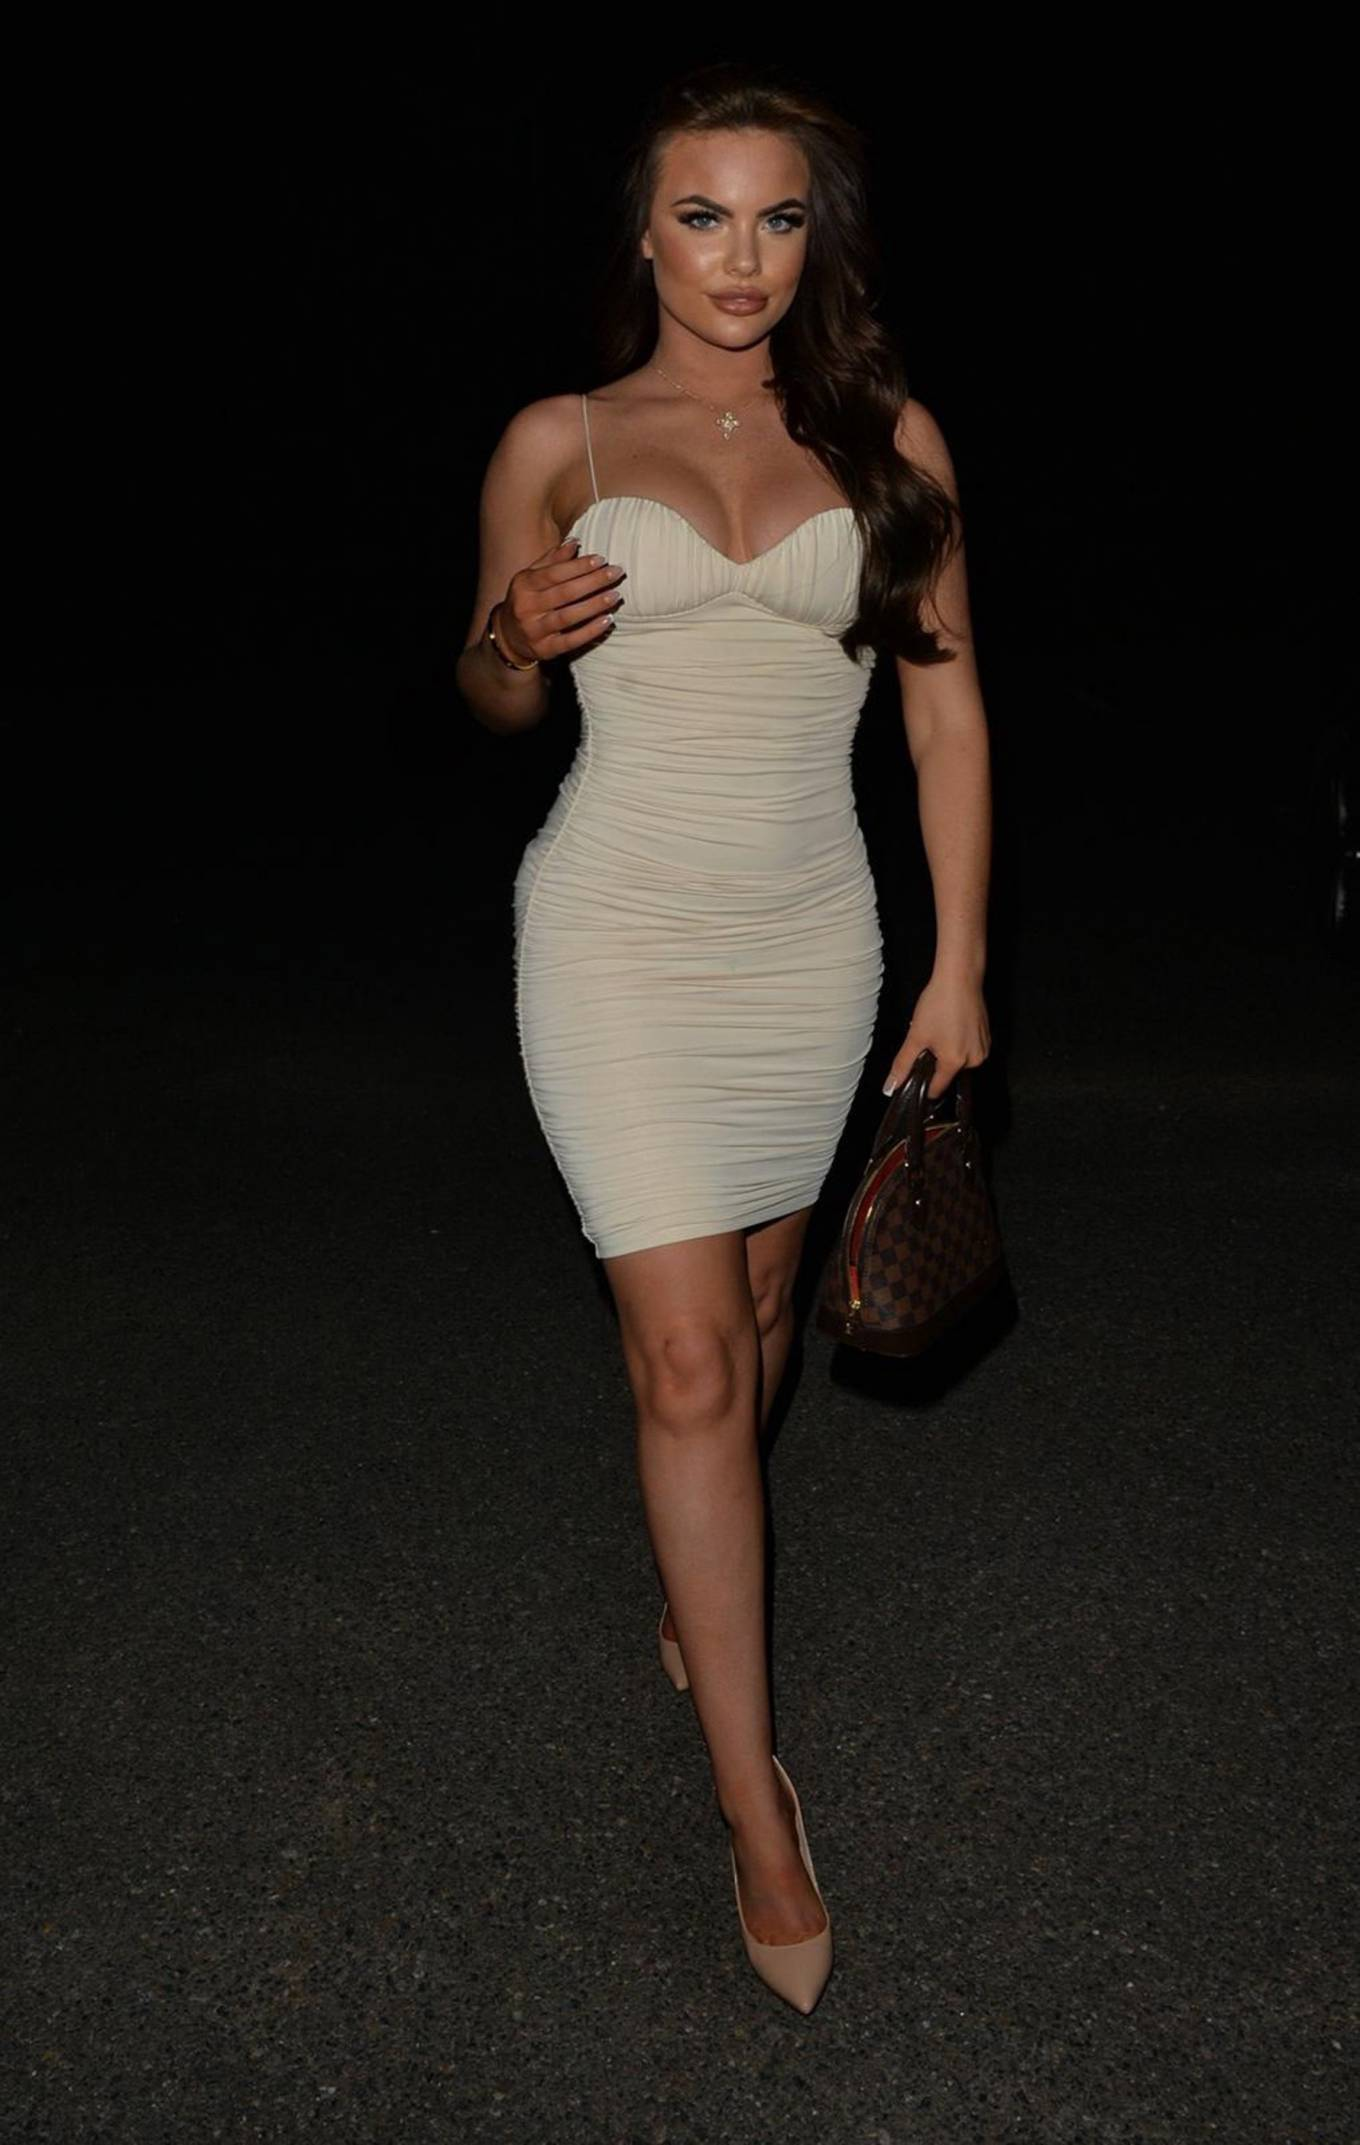 Kelsey Stratford - In tight white mini dress arriving at Radio roof bar in London